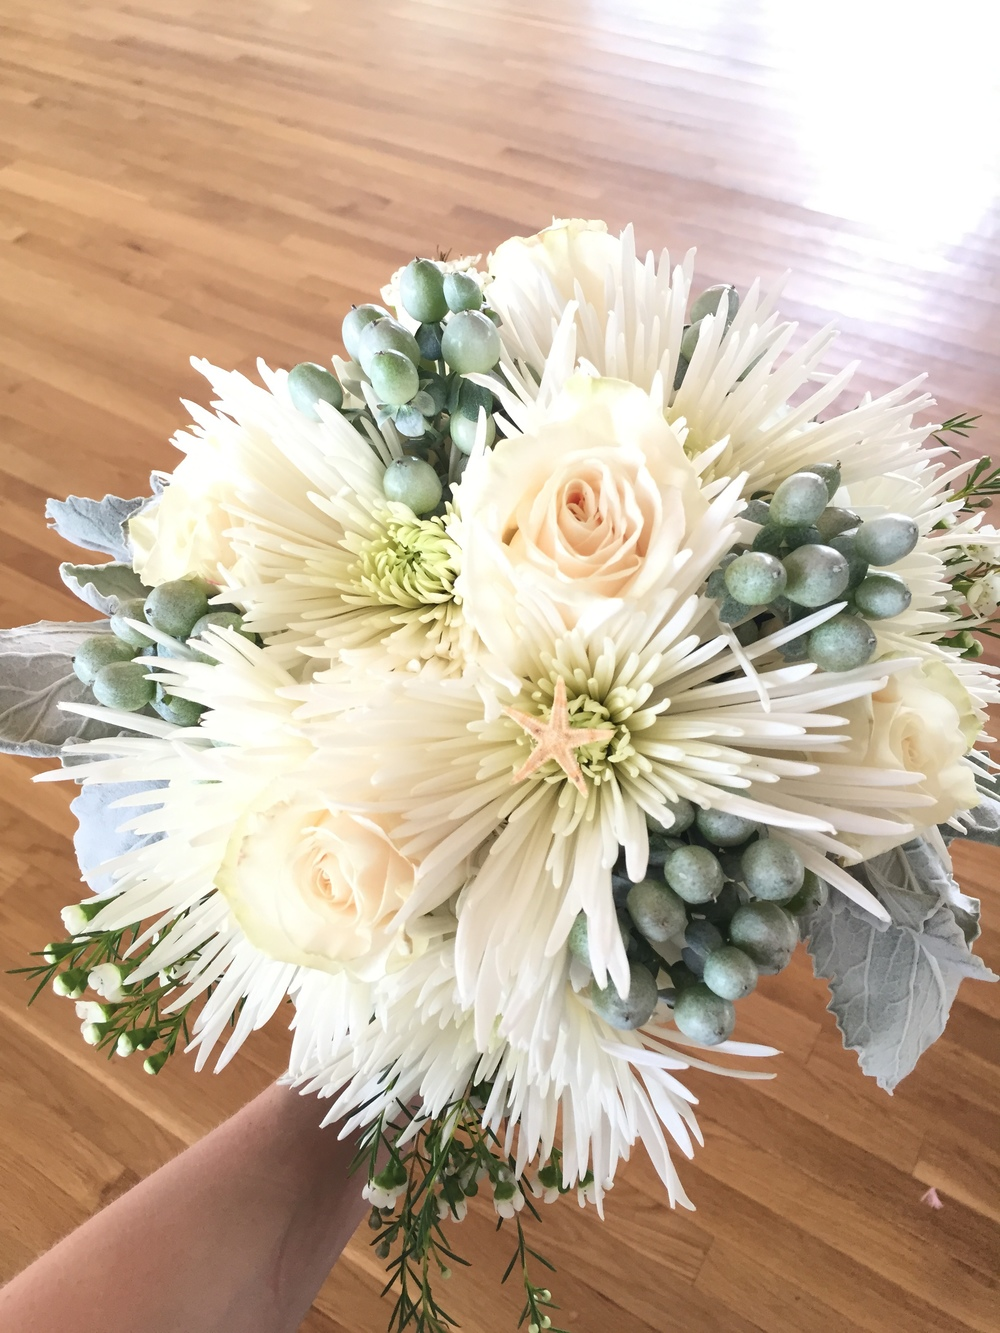 Norfolk Wholesale Florist really hit this one out the park! Starfish acccents! Dusty Miller! Ahh!